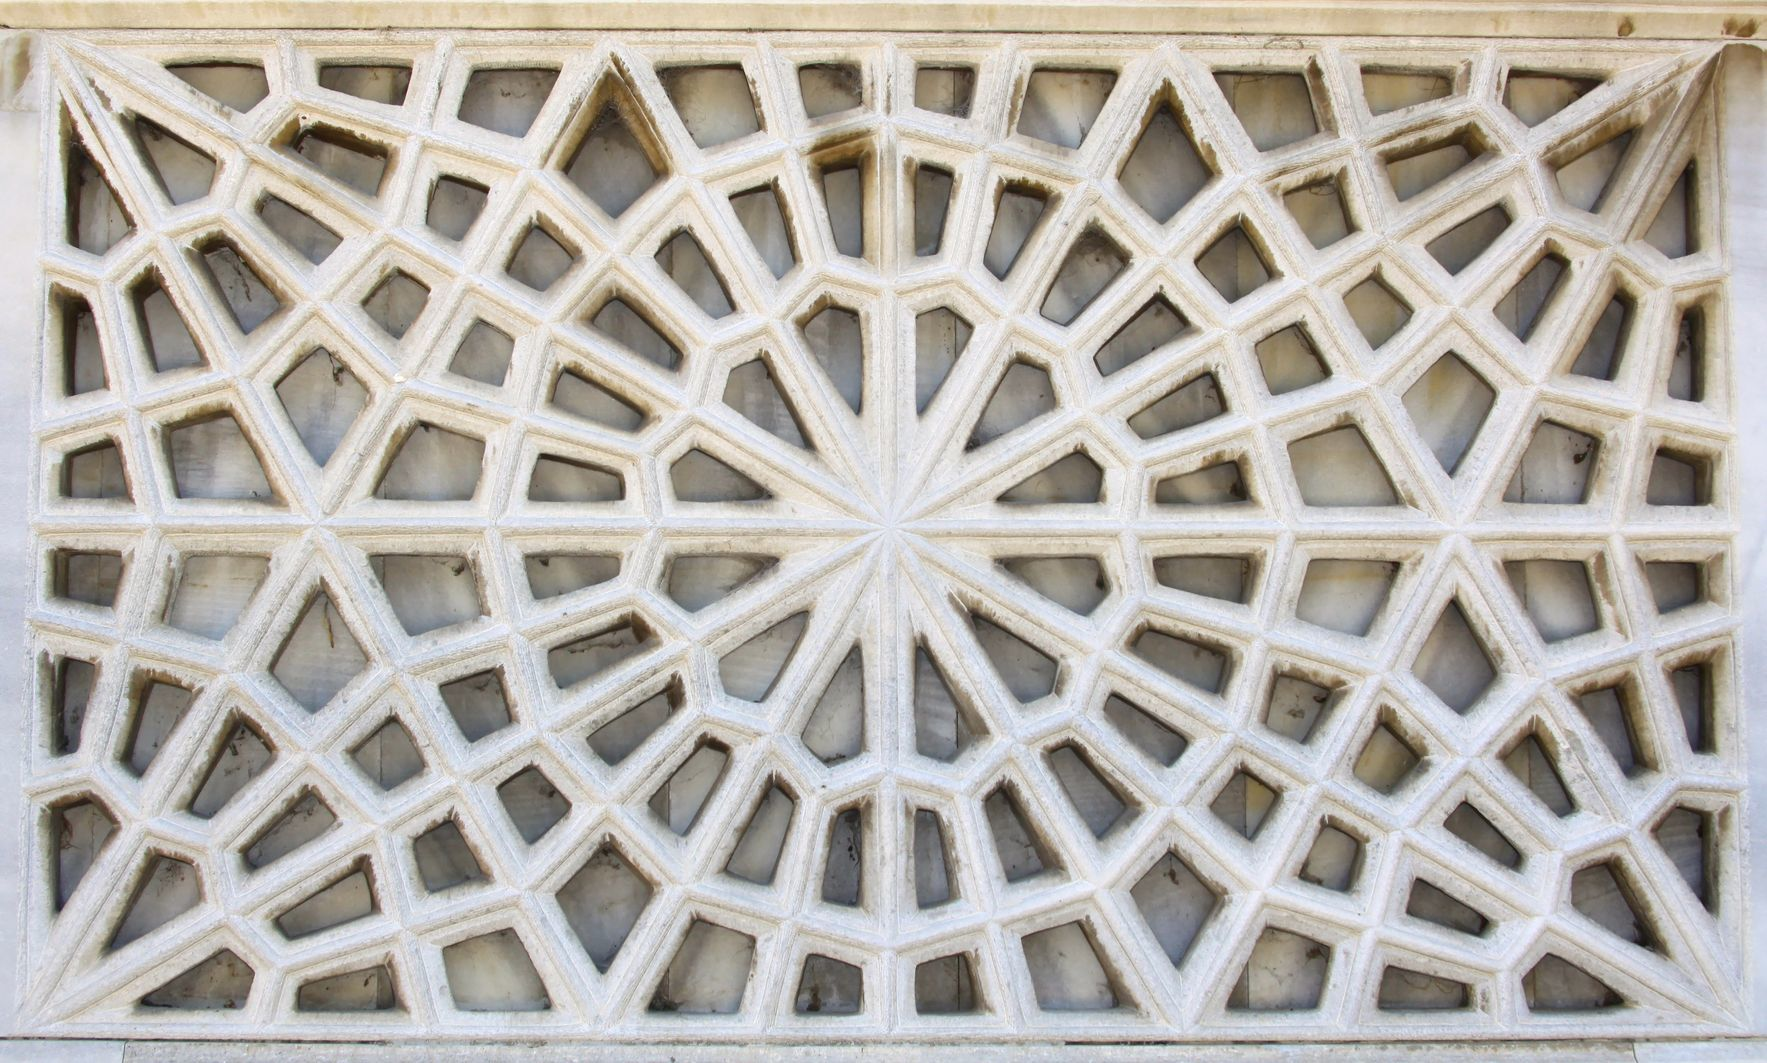 A geometric design cast in plaster